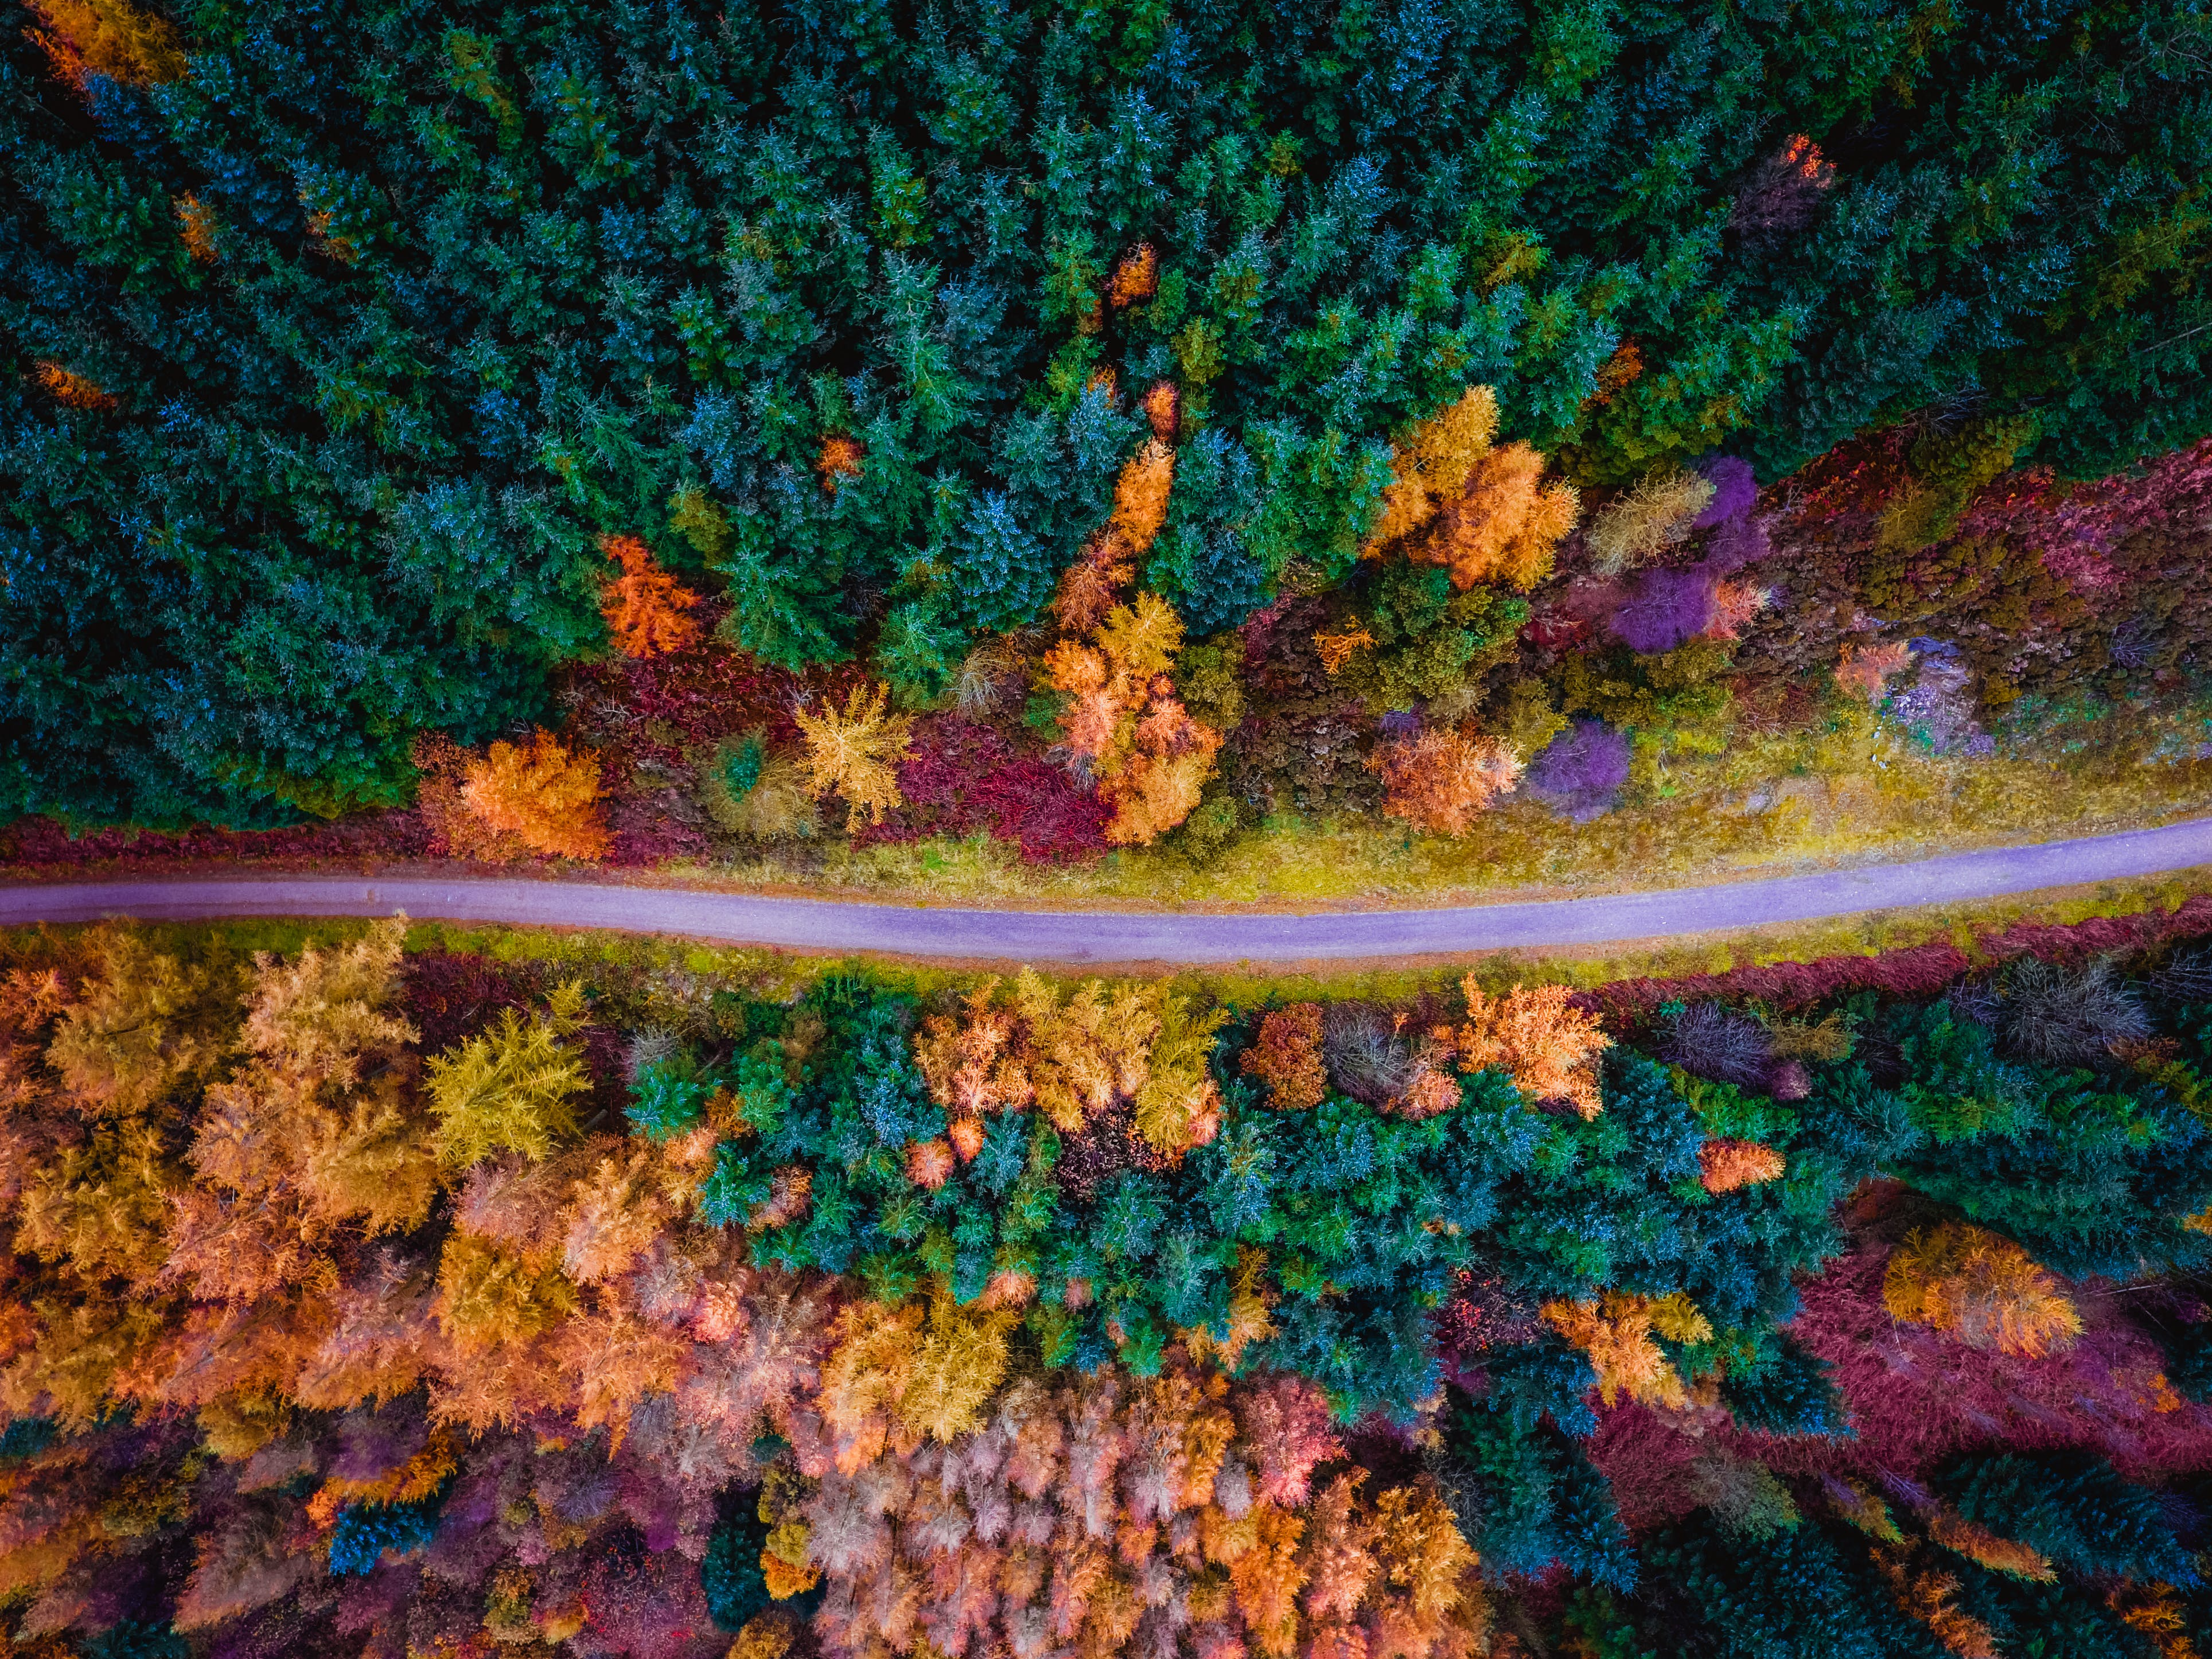 Aerial View of Road Along Pine Trees